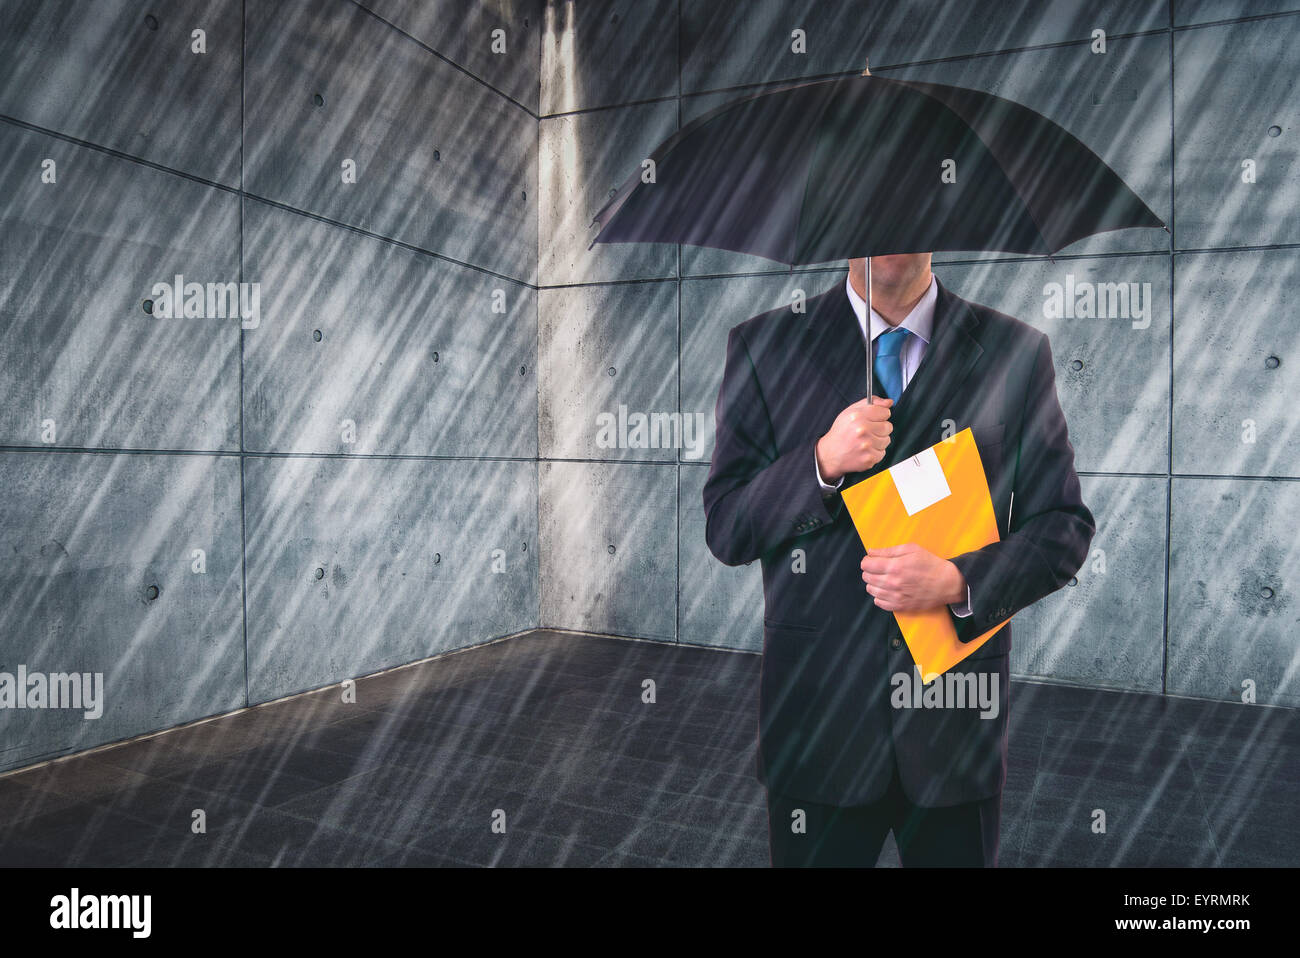 Insurance Agent with Umbrella Protecting from Rain in Urban Outdoor Setting, Risk Assessment and Analysis - Stock Image